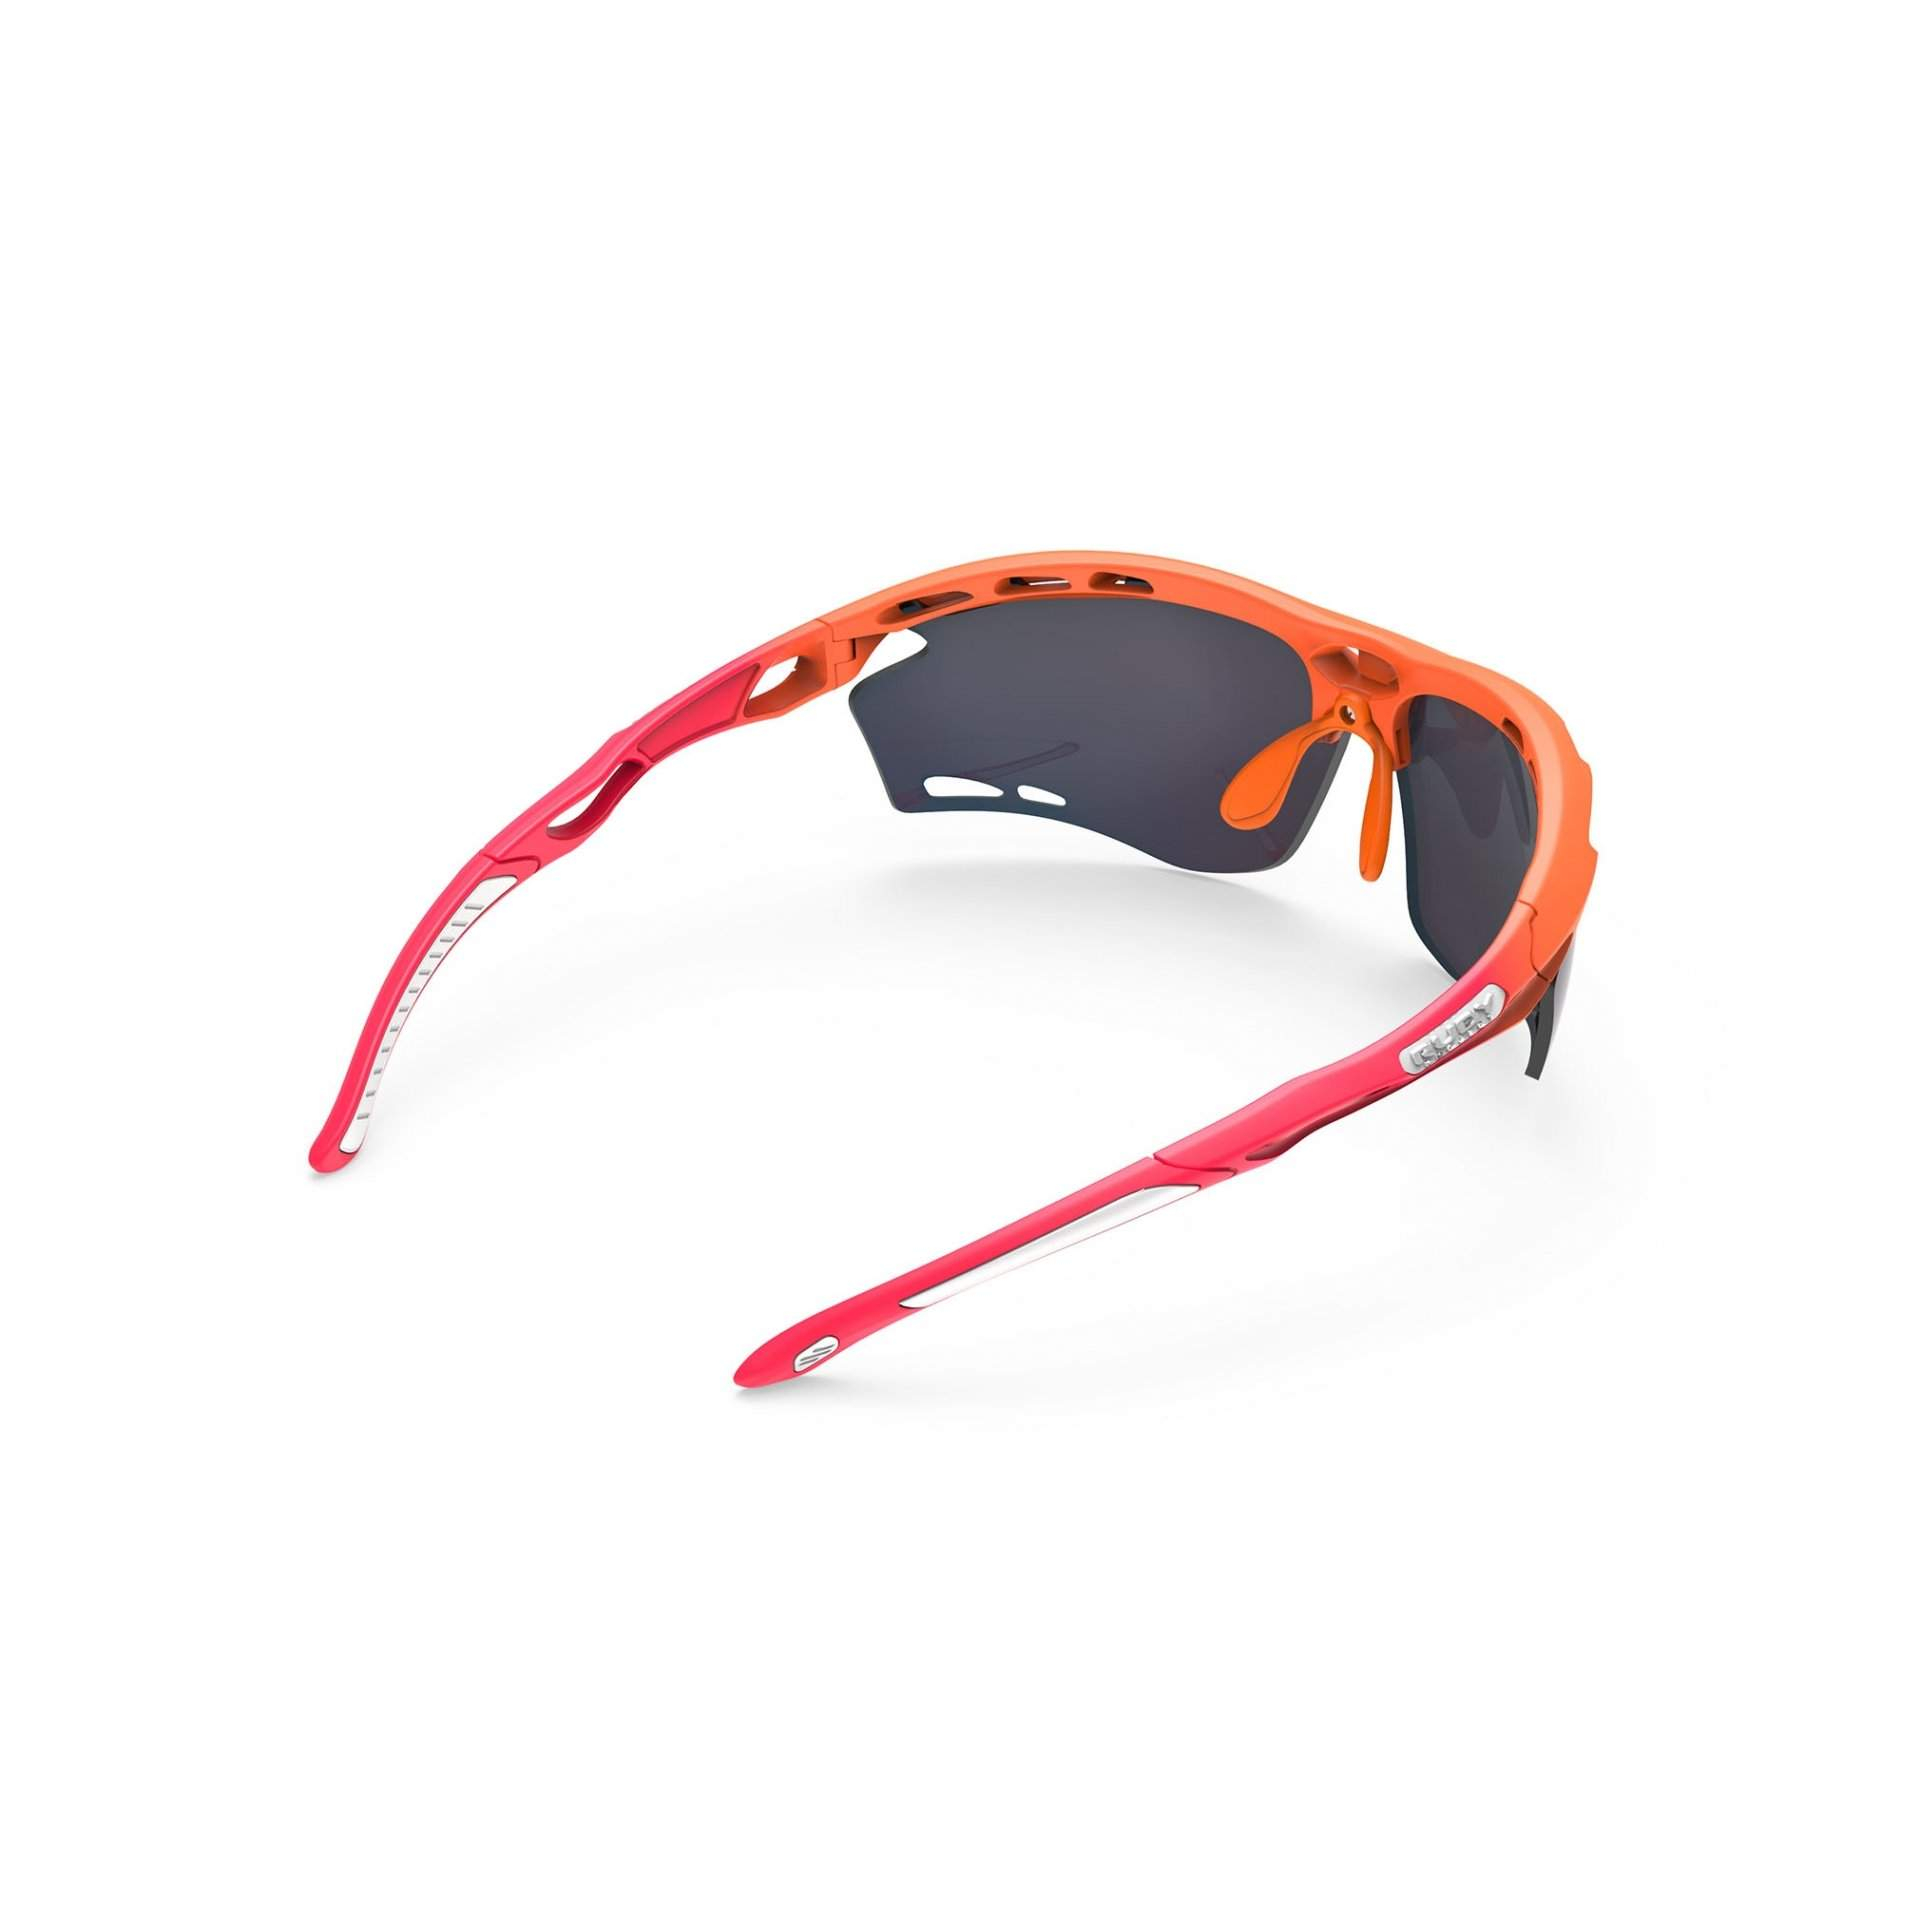 OKULARY RUDY PROJECT PROPULSE MANDARIN FADE CORAL MULTILASER RED 5